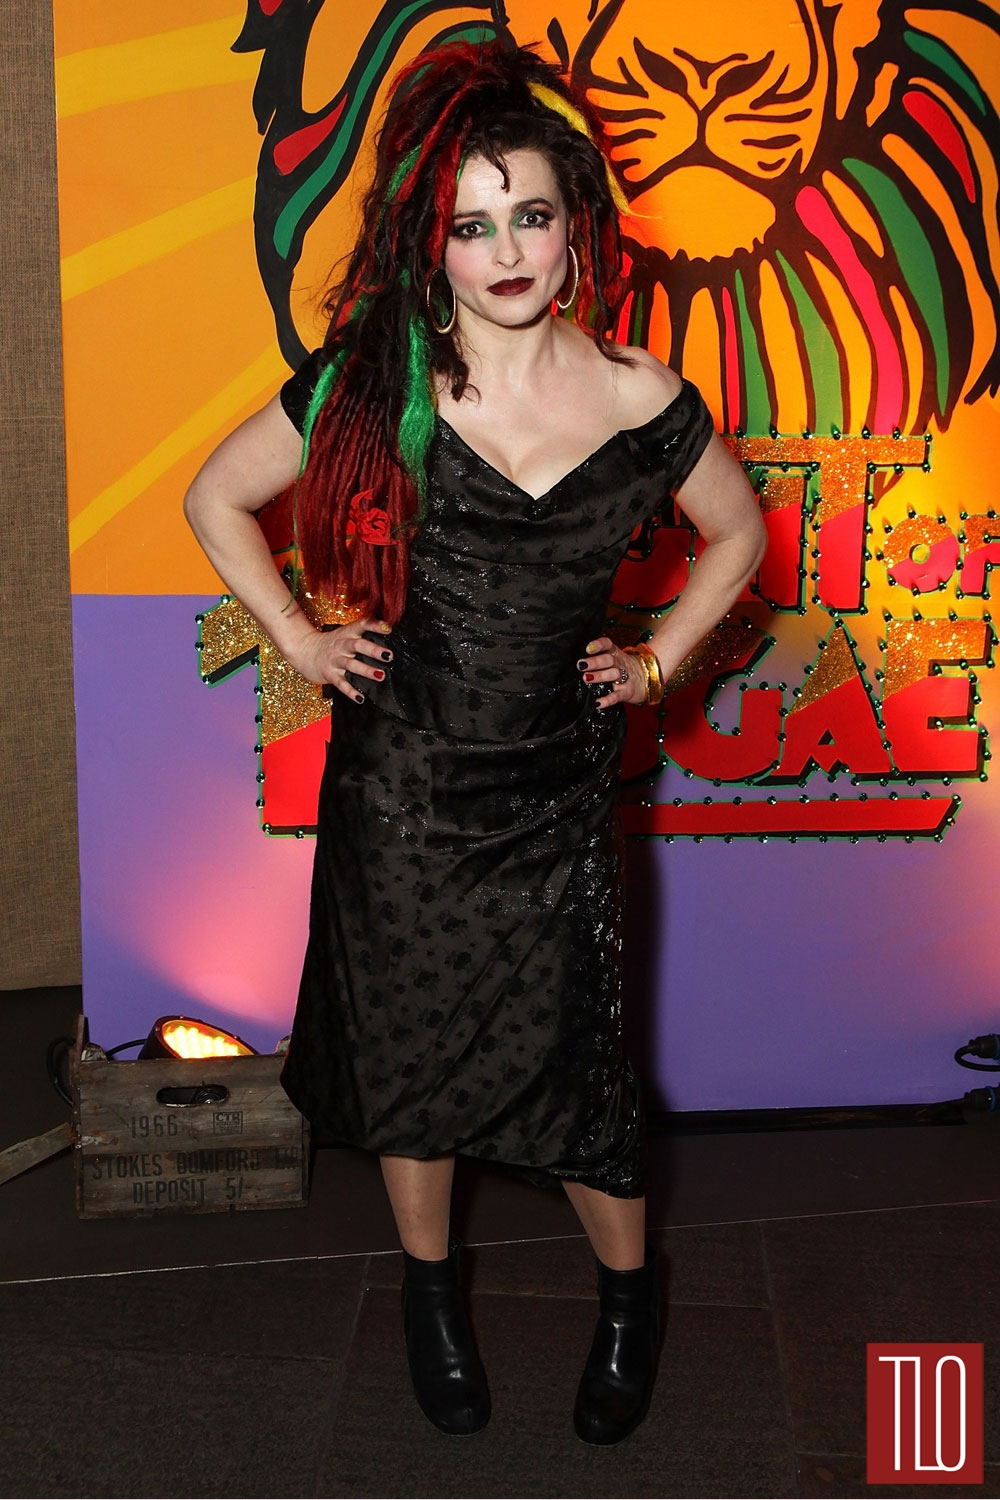 Helena-Bonham-Carter-Night-Reggae-VW-TLO (1)